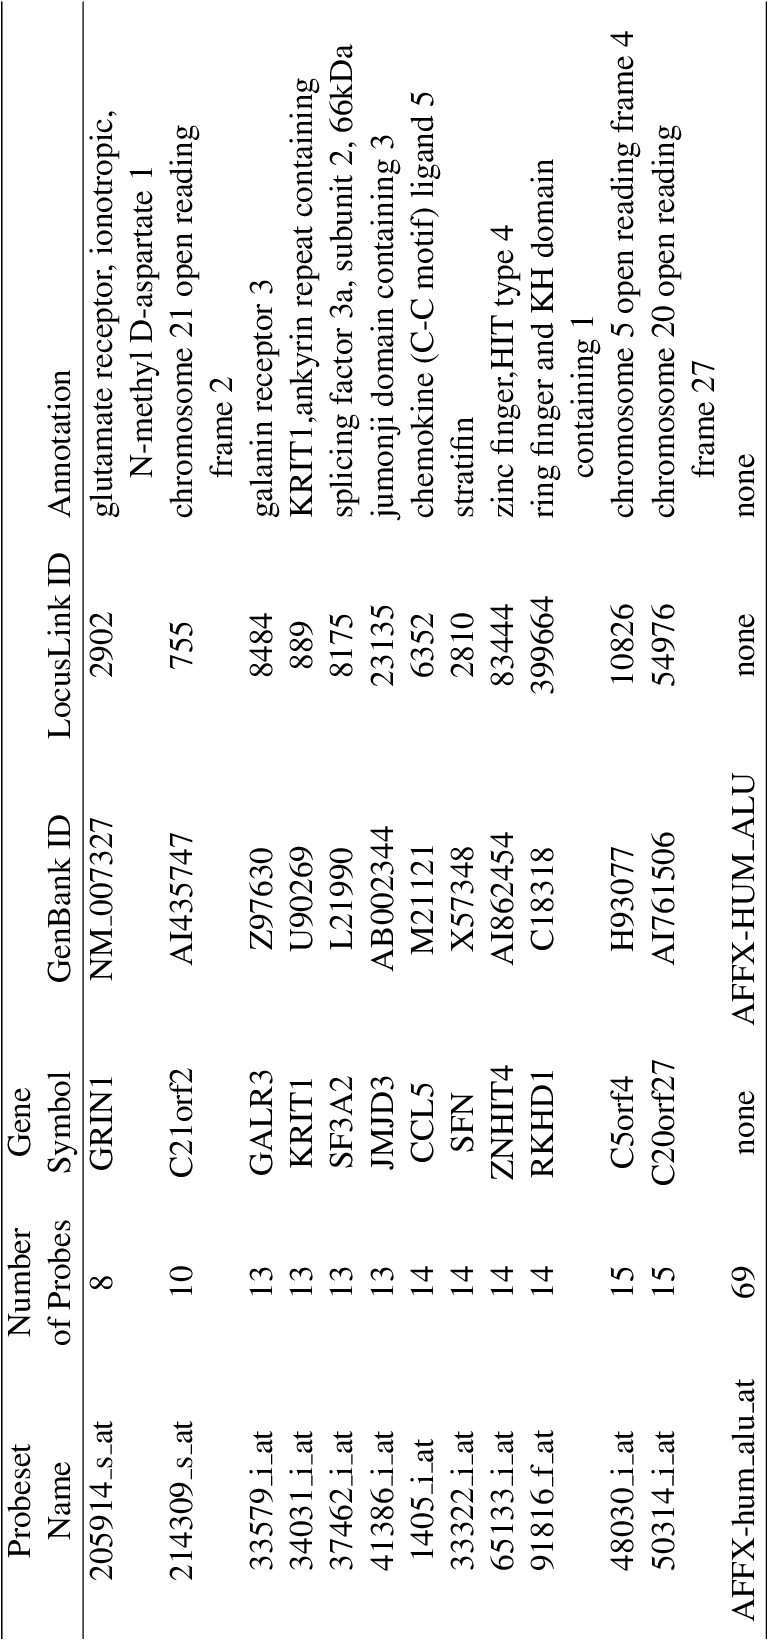 table C.3